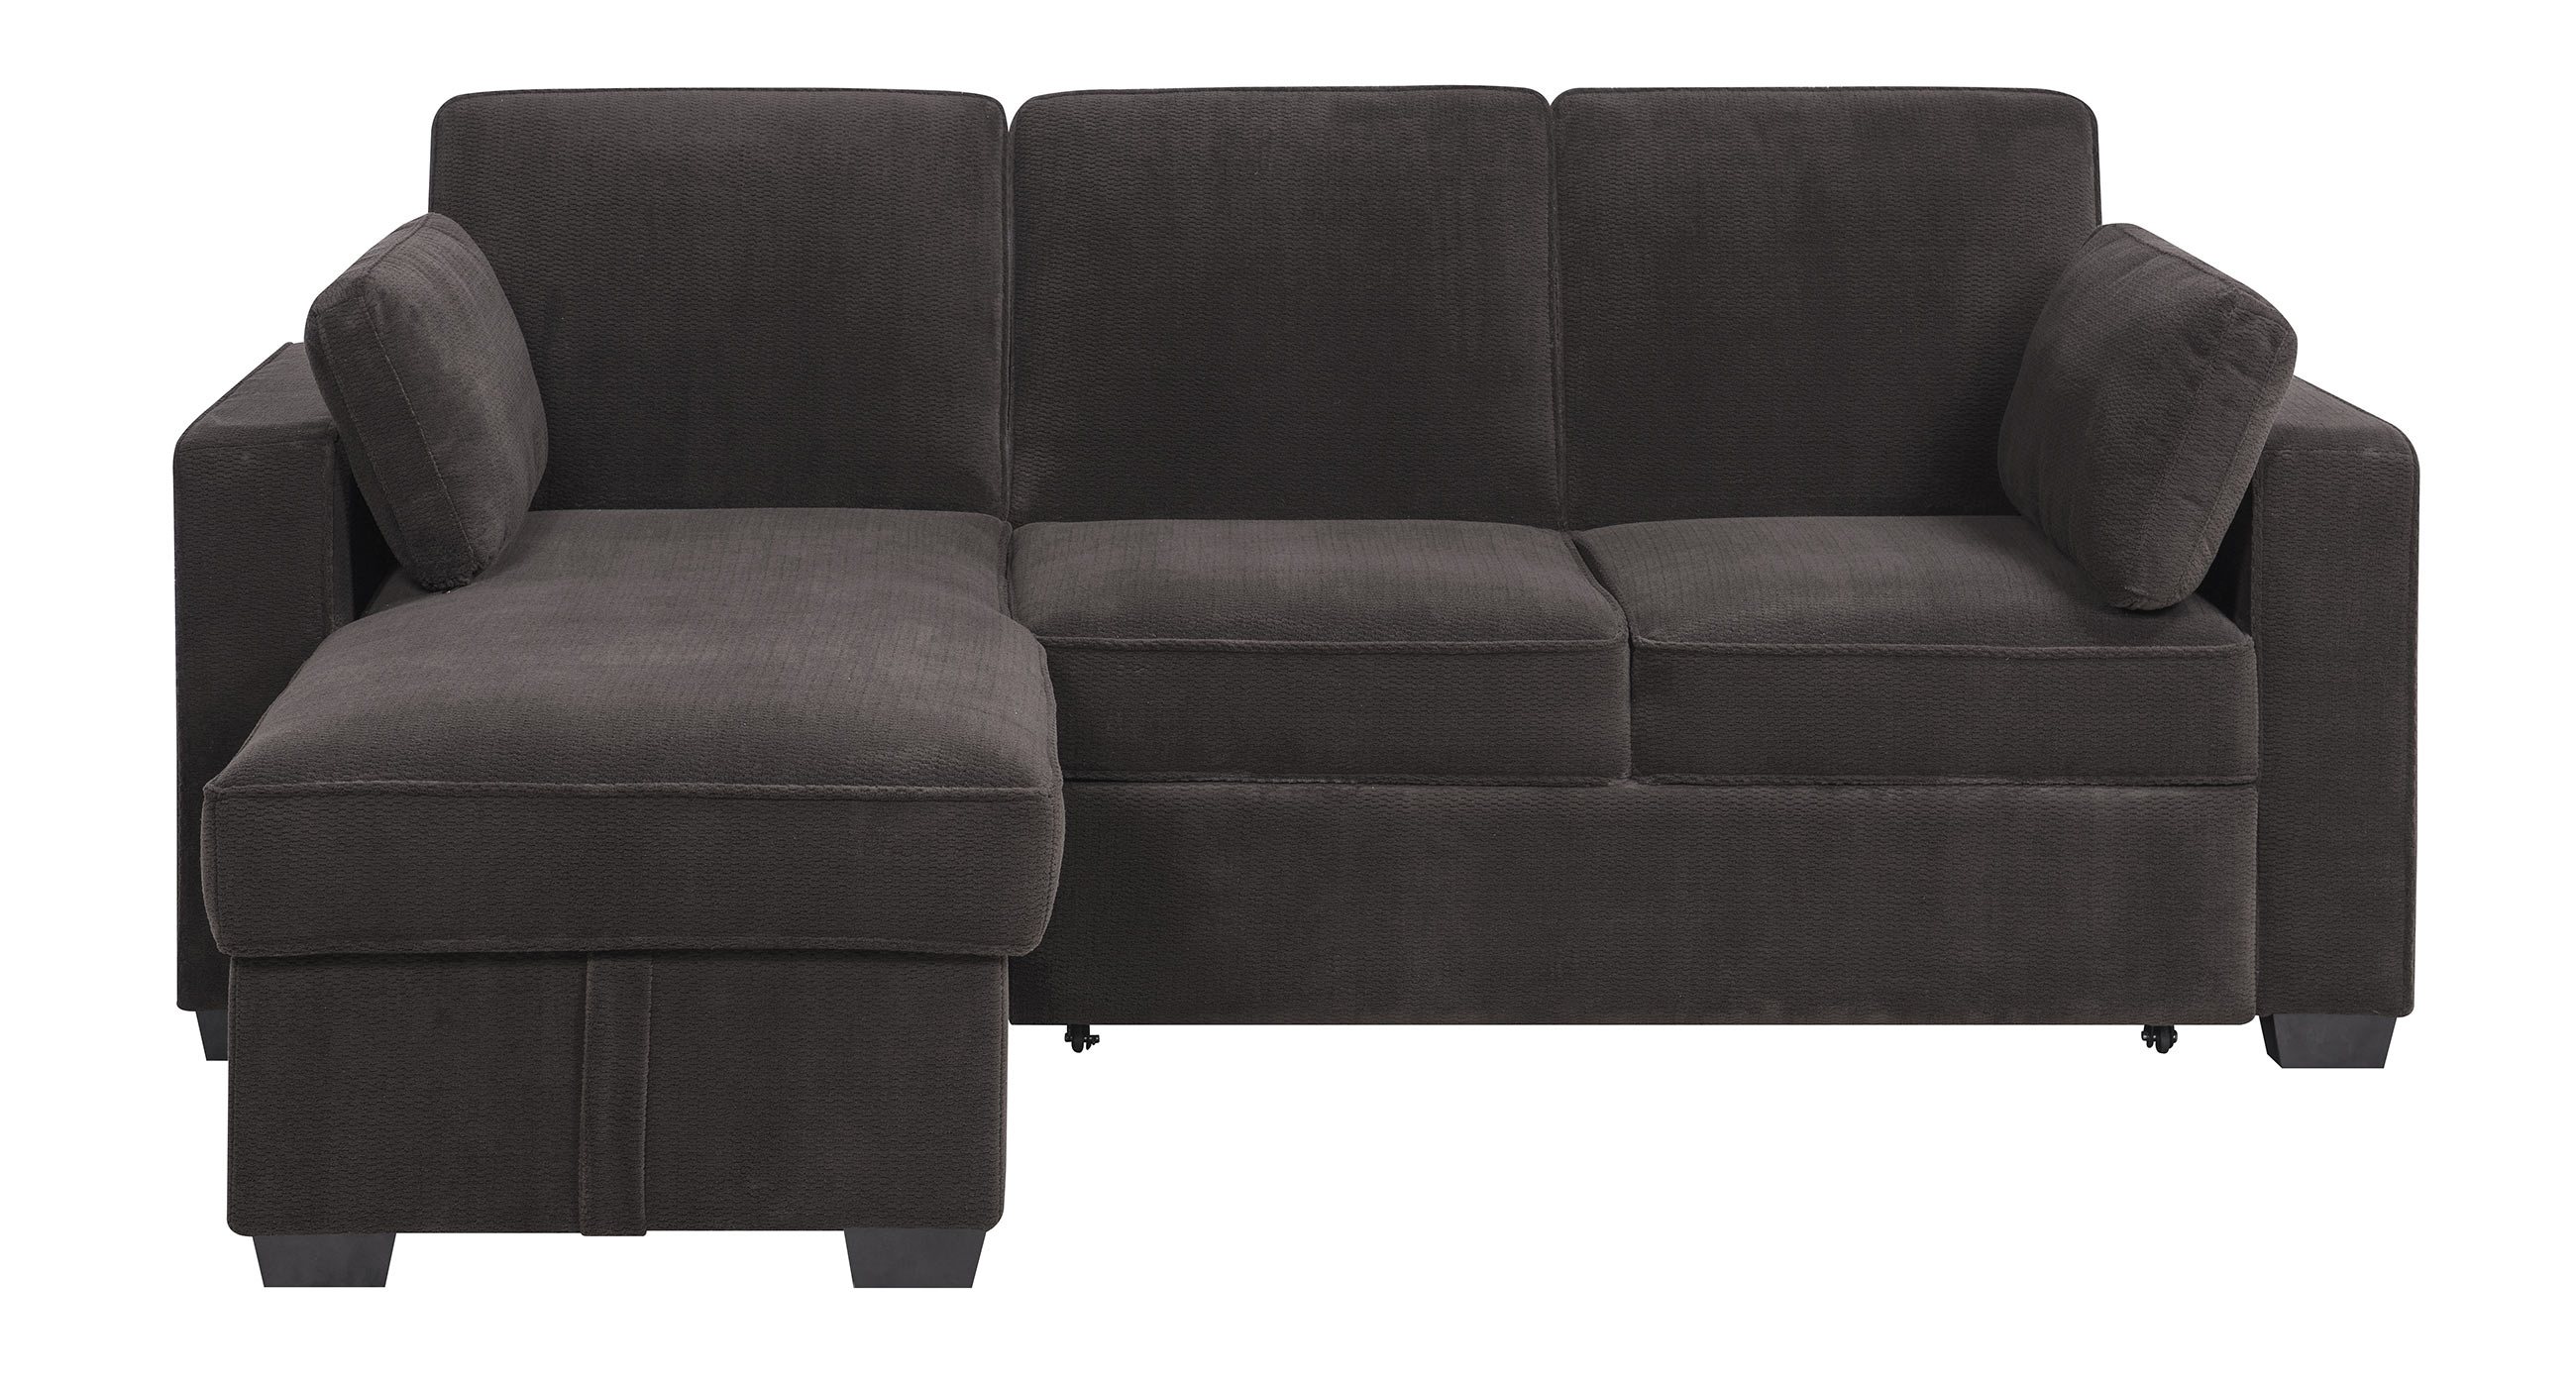 Chaela Sectional Convertible Sofa Dark Greyserta / Lifestyle With Regard To Convertible Sofas (Image 2 of 10)